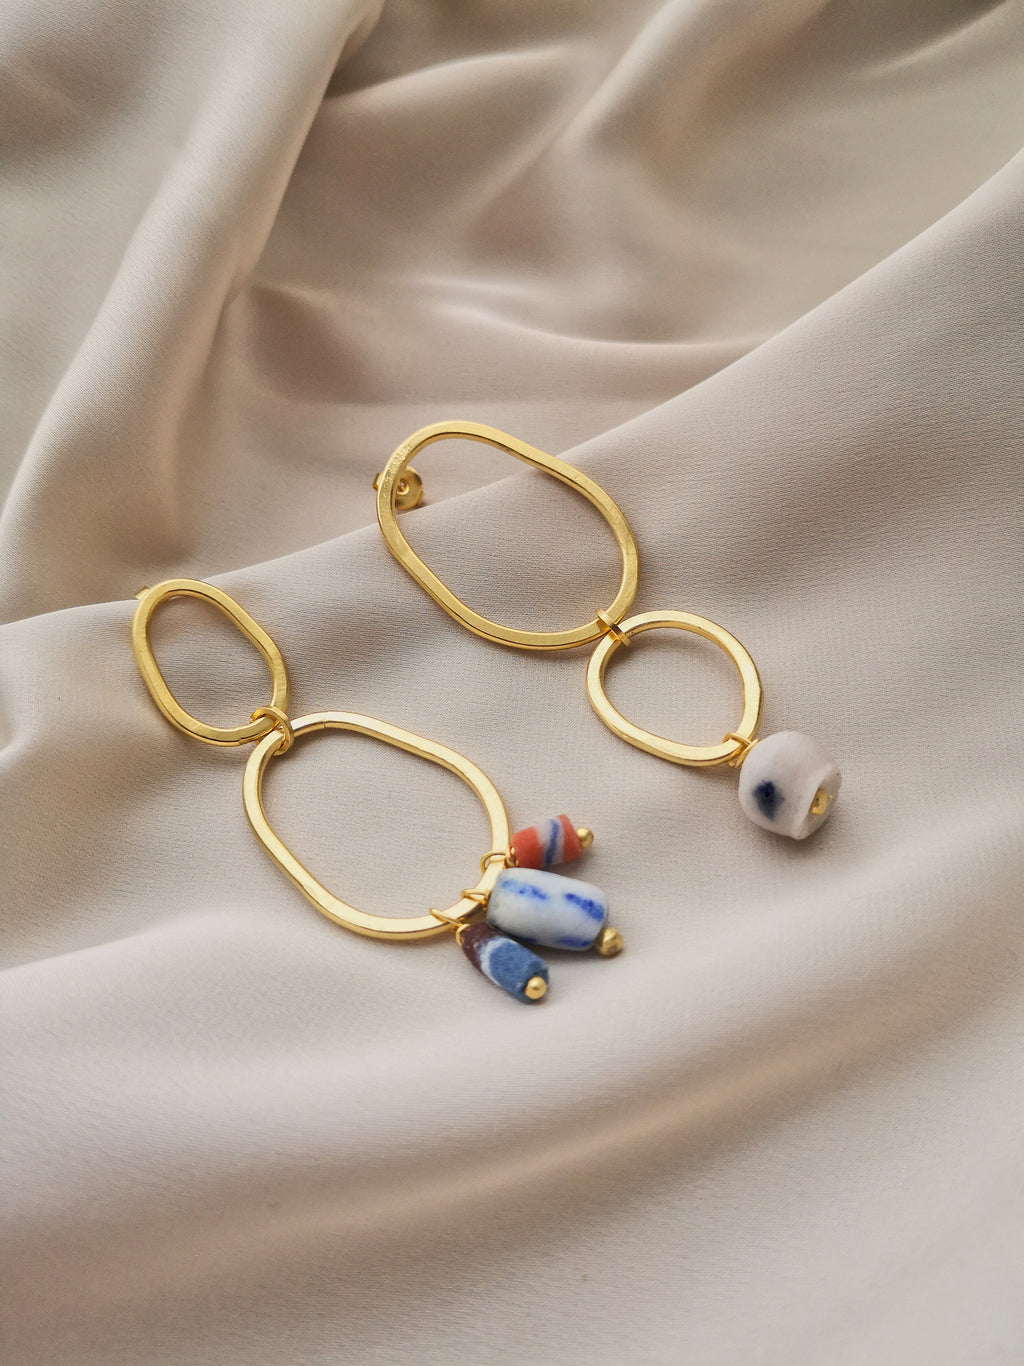 ABSTRACT GLASS HOOPS